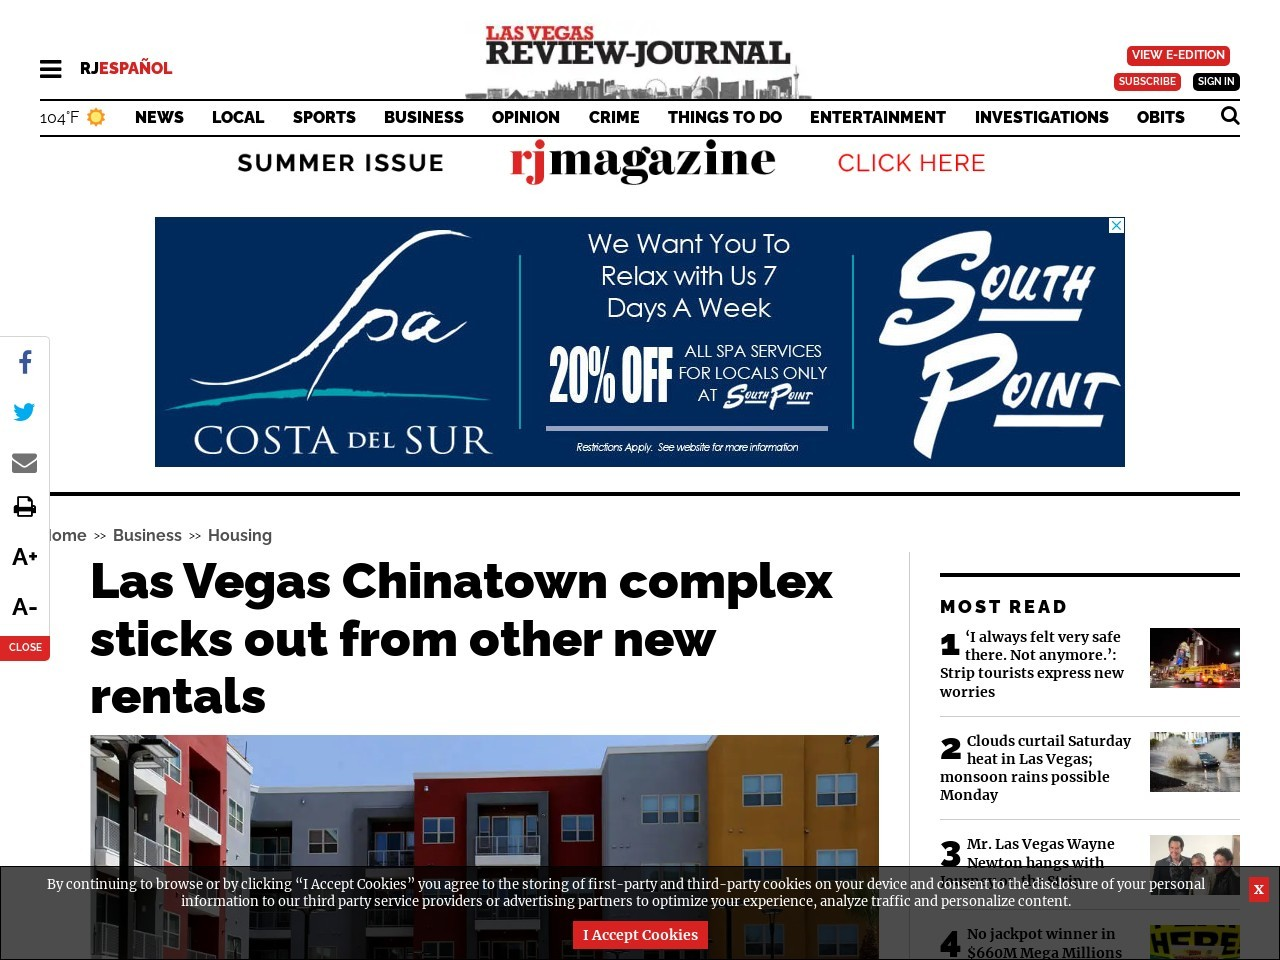 Las Vegas Chinatown complex sticks out from other new rentals